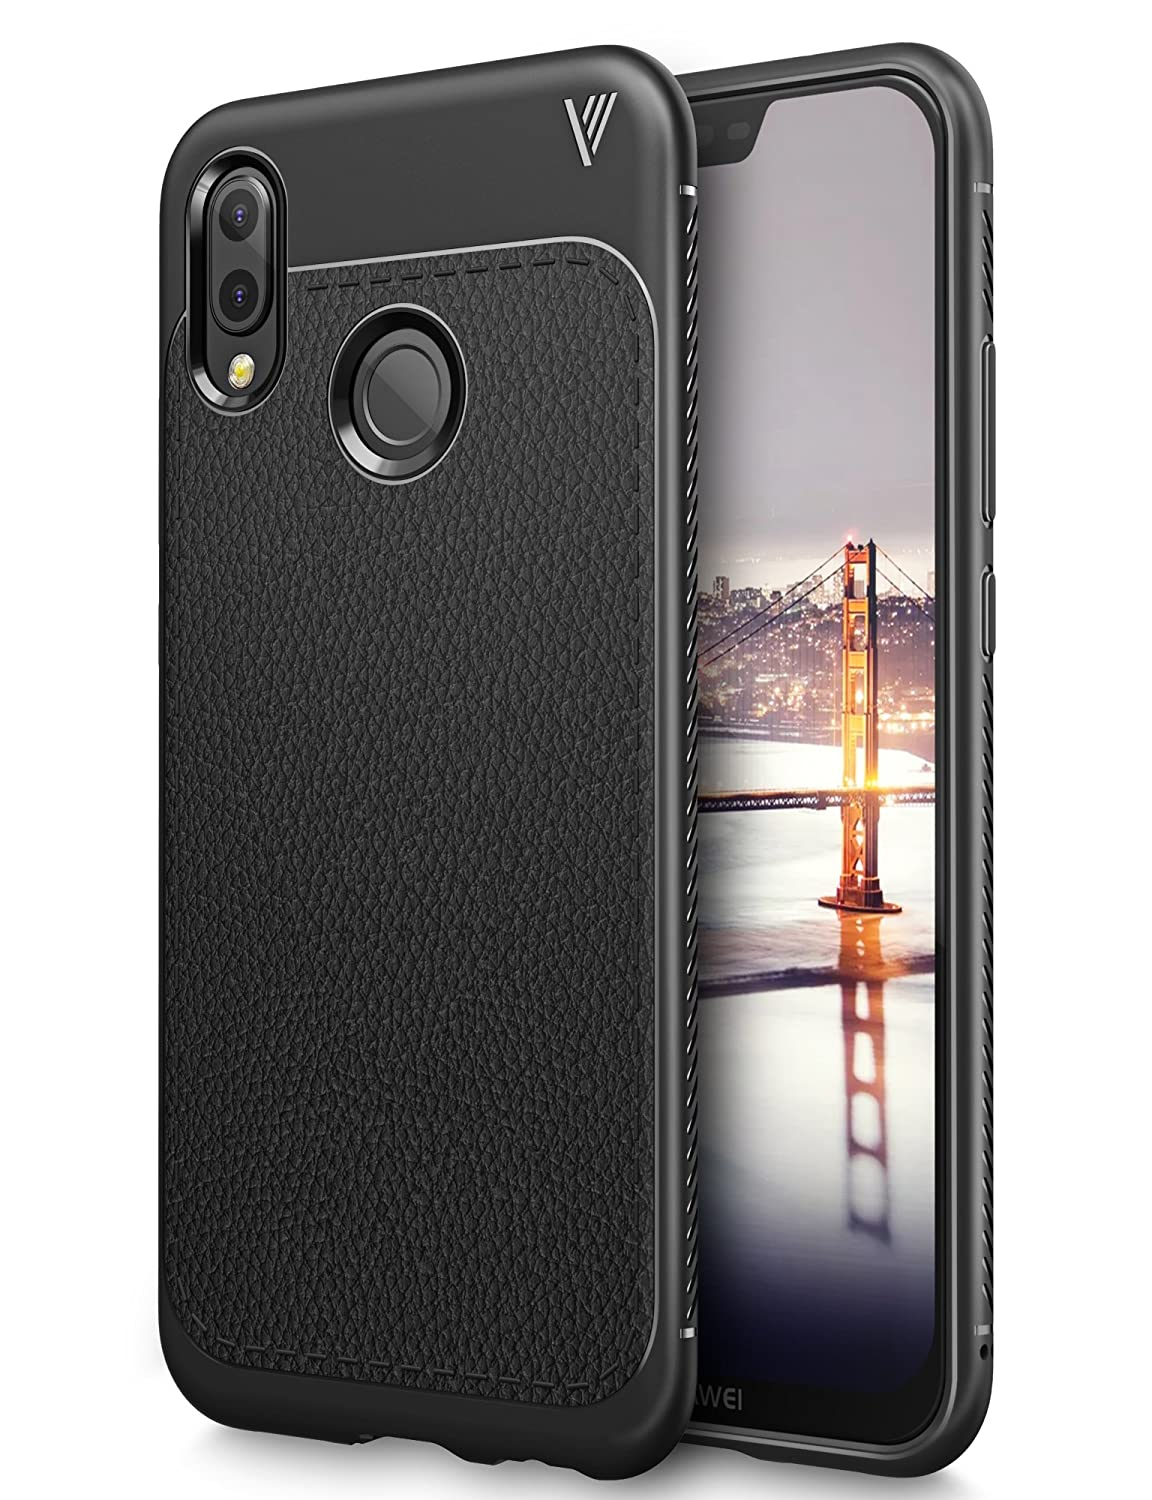 Huawei P20 lite case, Huawei P20 lite cover, BoseWek Huawei P20 lite protective case, durable protection, exact compatibility for Huawei P20 lite Smartphone. (Black)